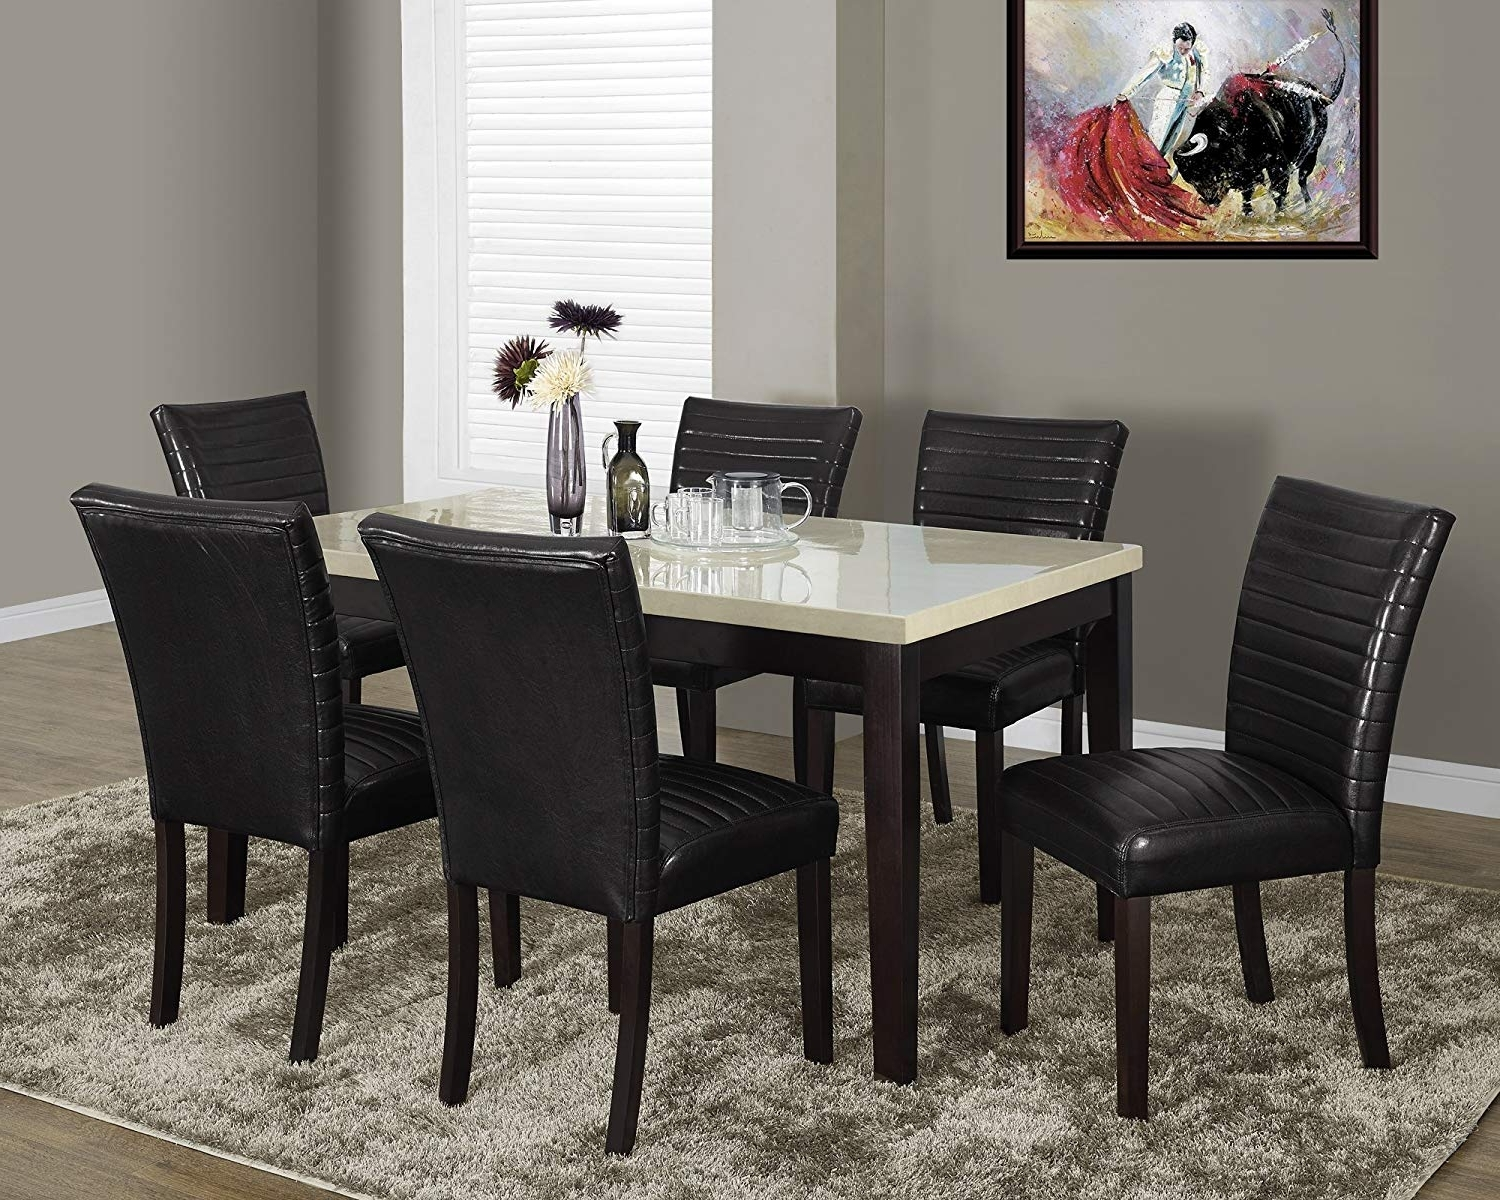 Most Recent Cream Lacquer Dining Tables In Amazon – Monarch Specialties Cream Lacquered Marble Look Dining (View 16 of 25)